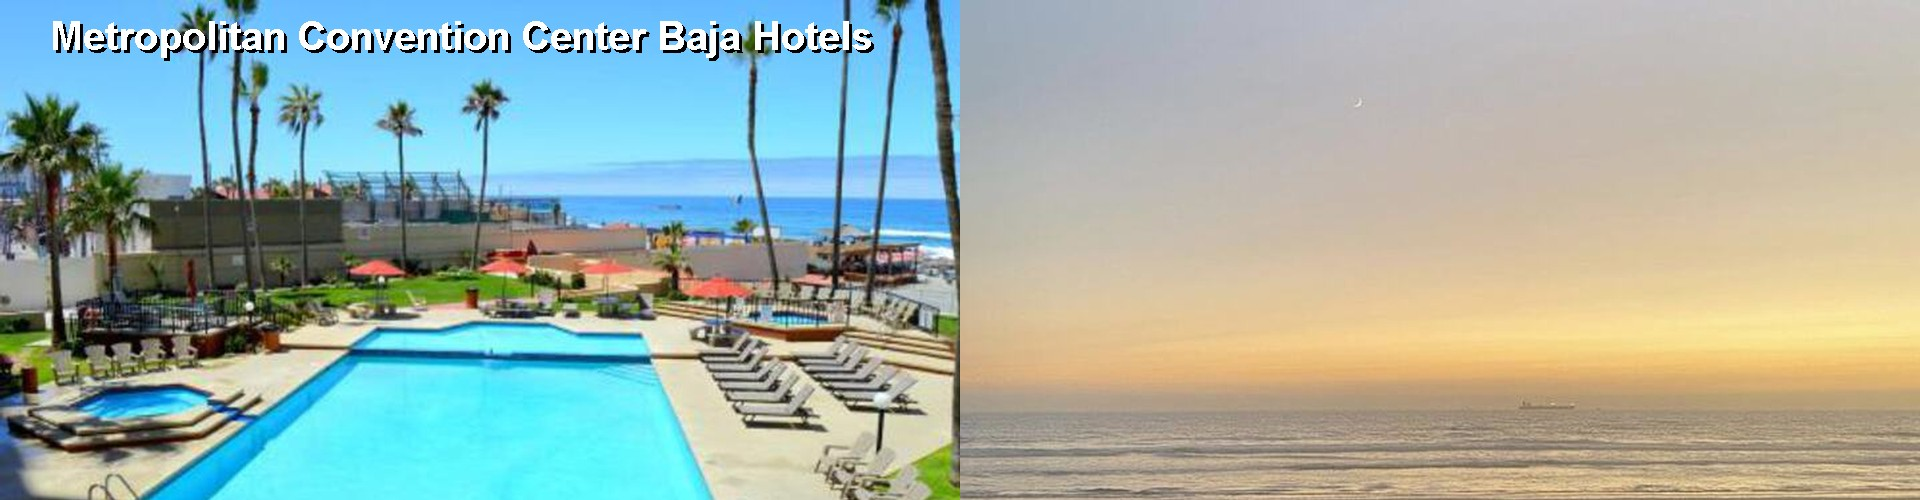 3 Best Hotels near Metropolitan Convention Center Baja